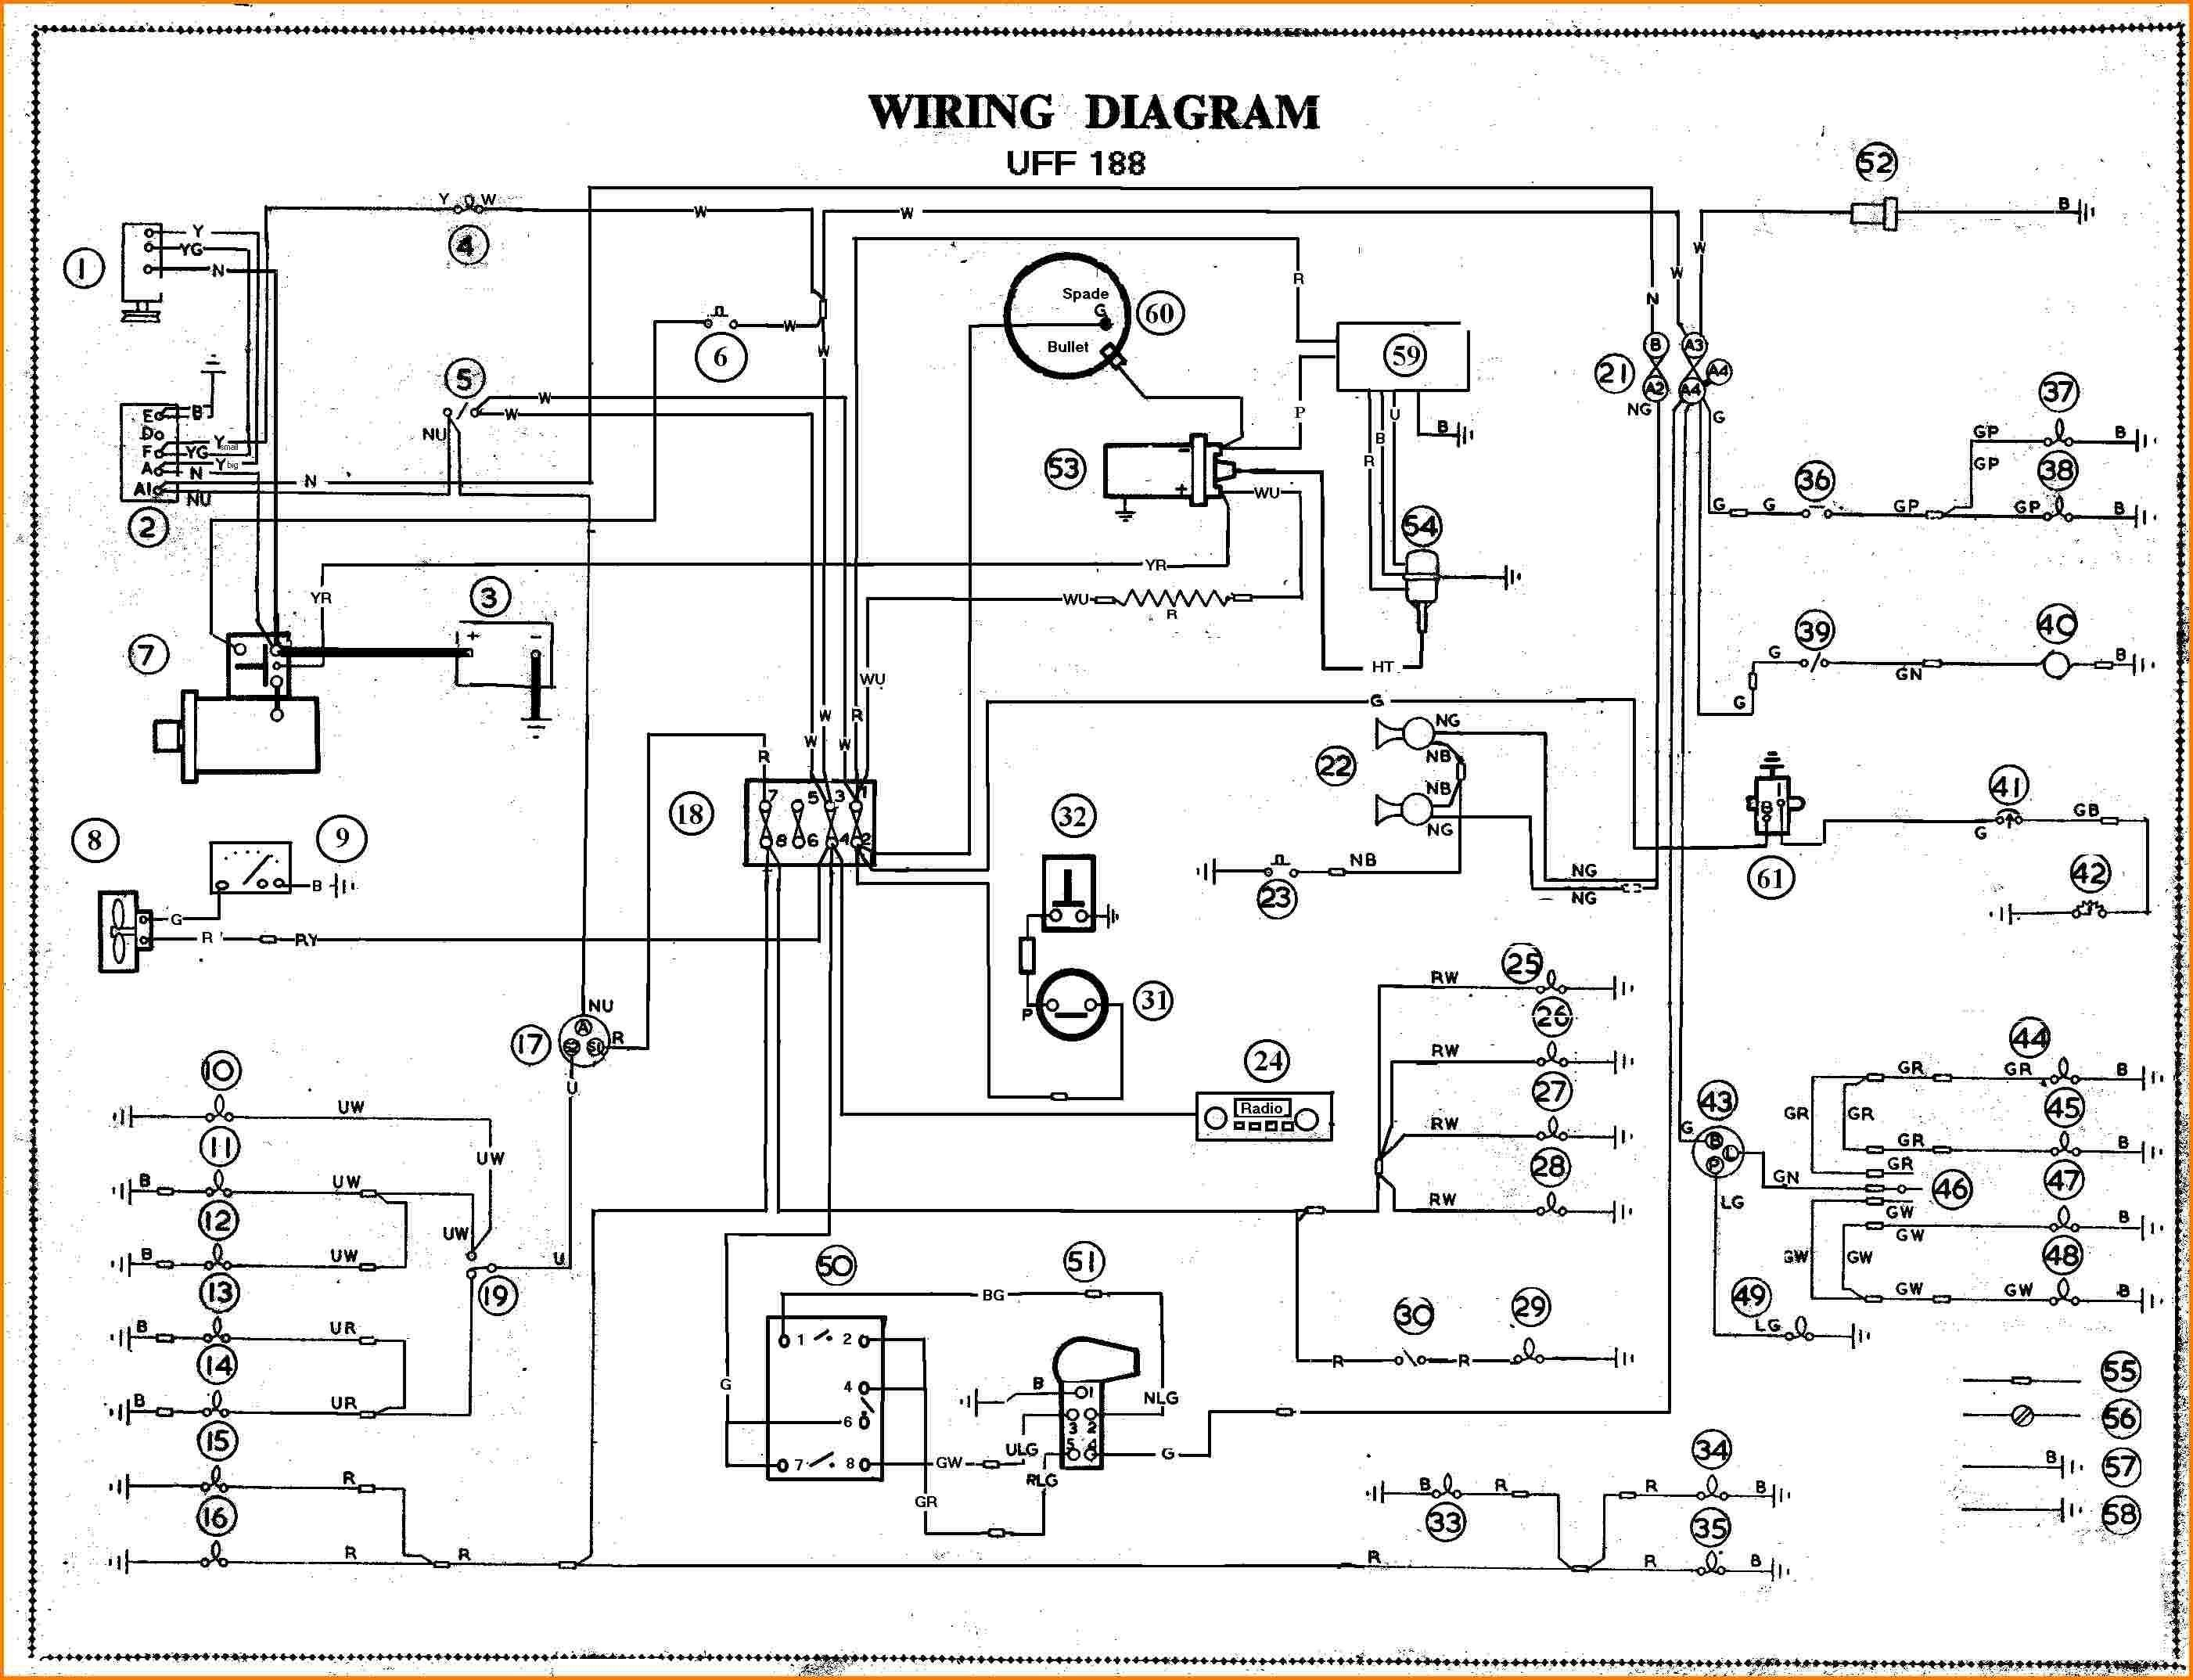 Auto Wiring Diagram Free | Wiring Diagram on